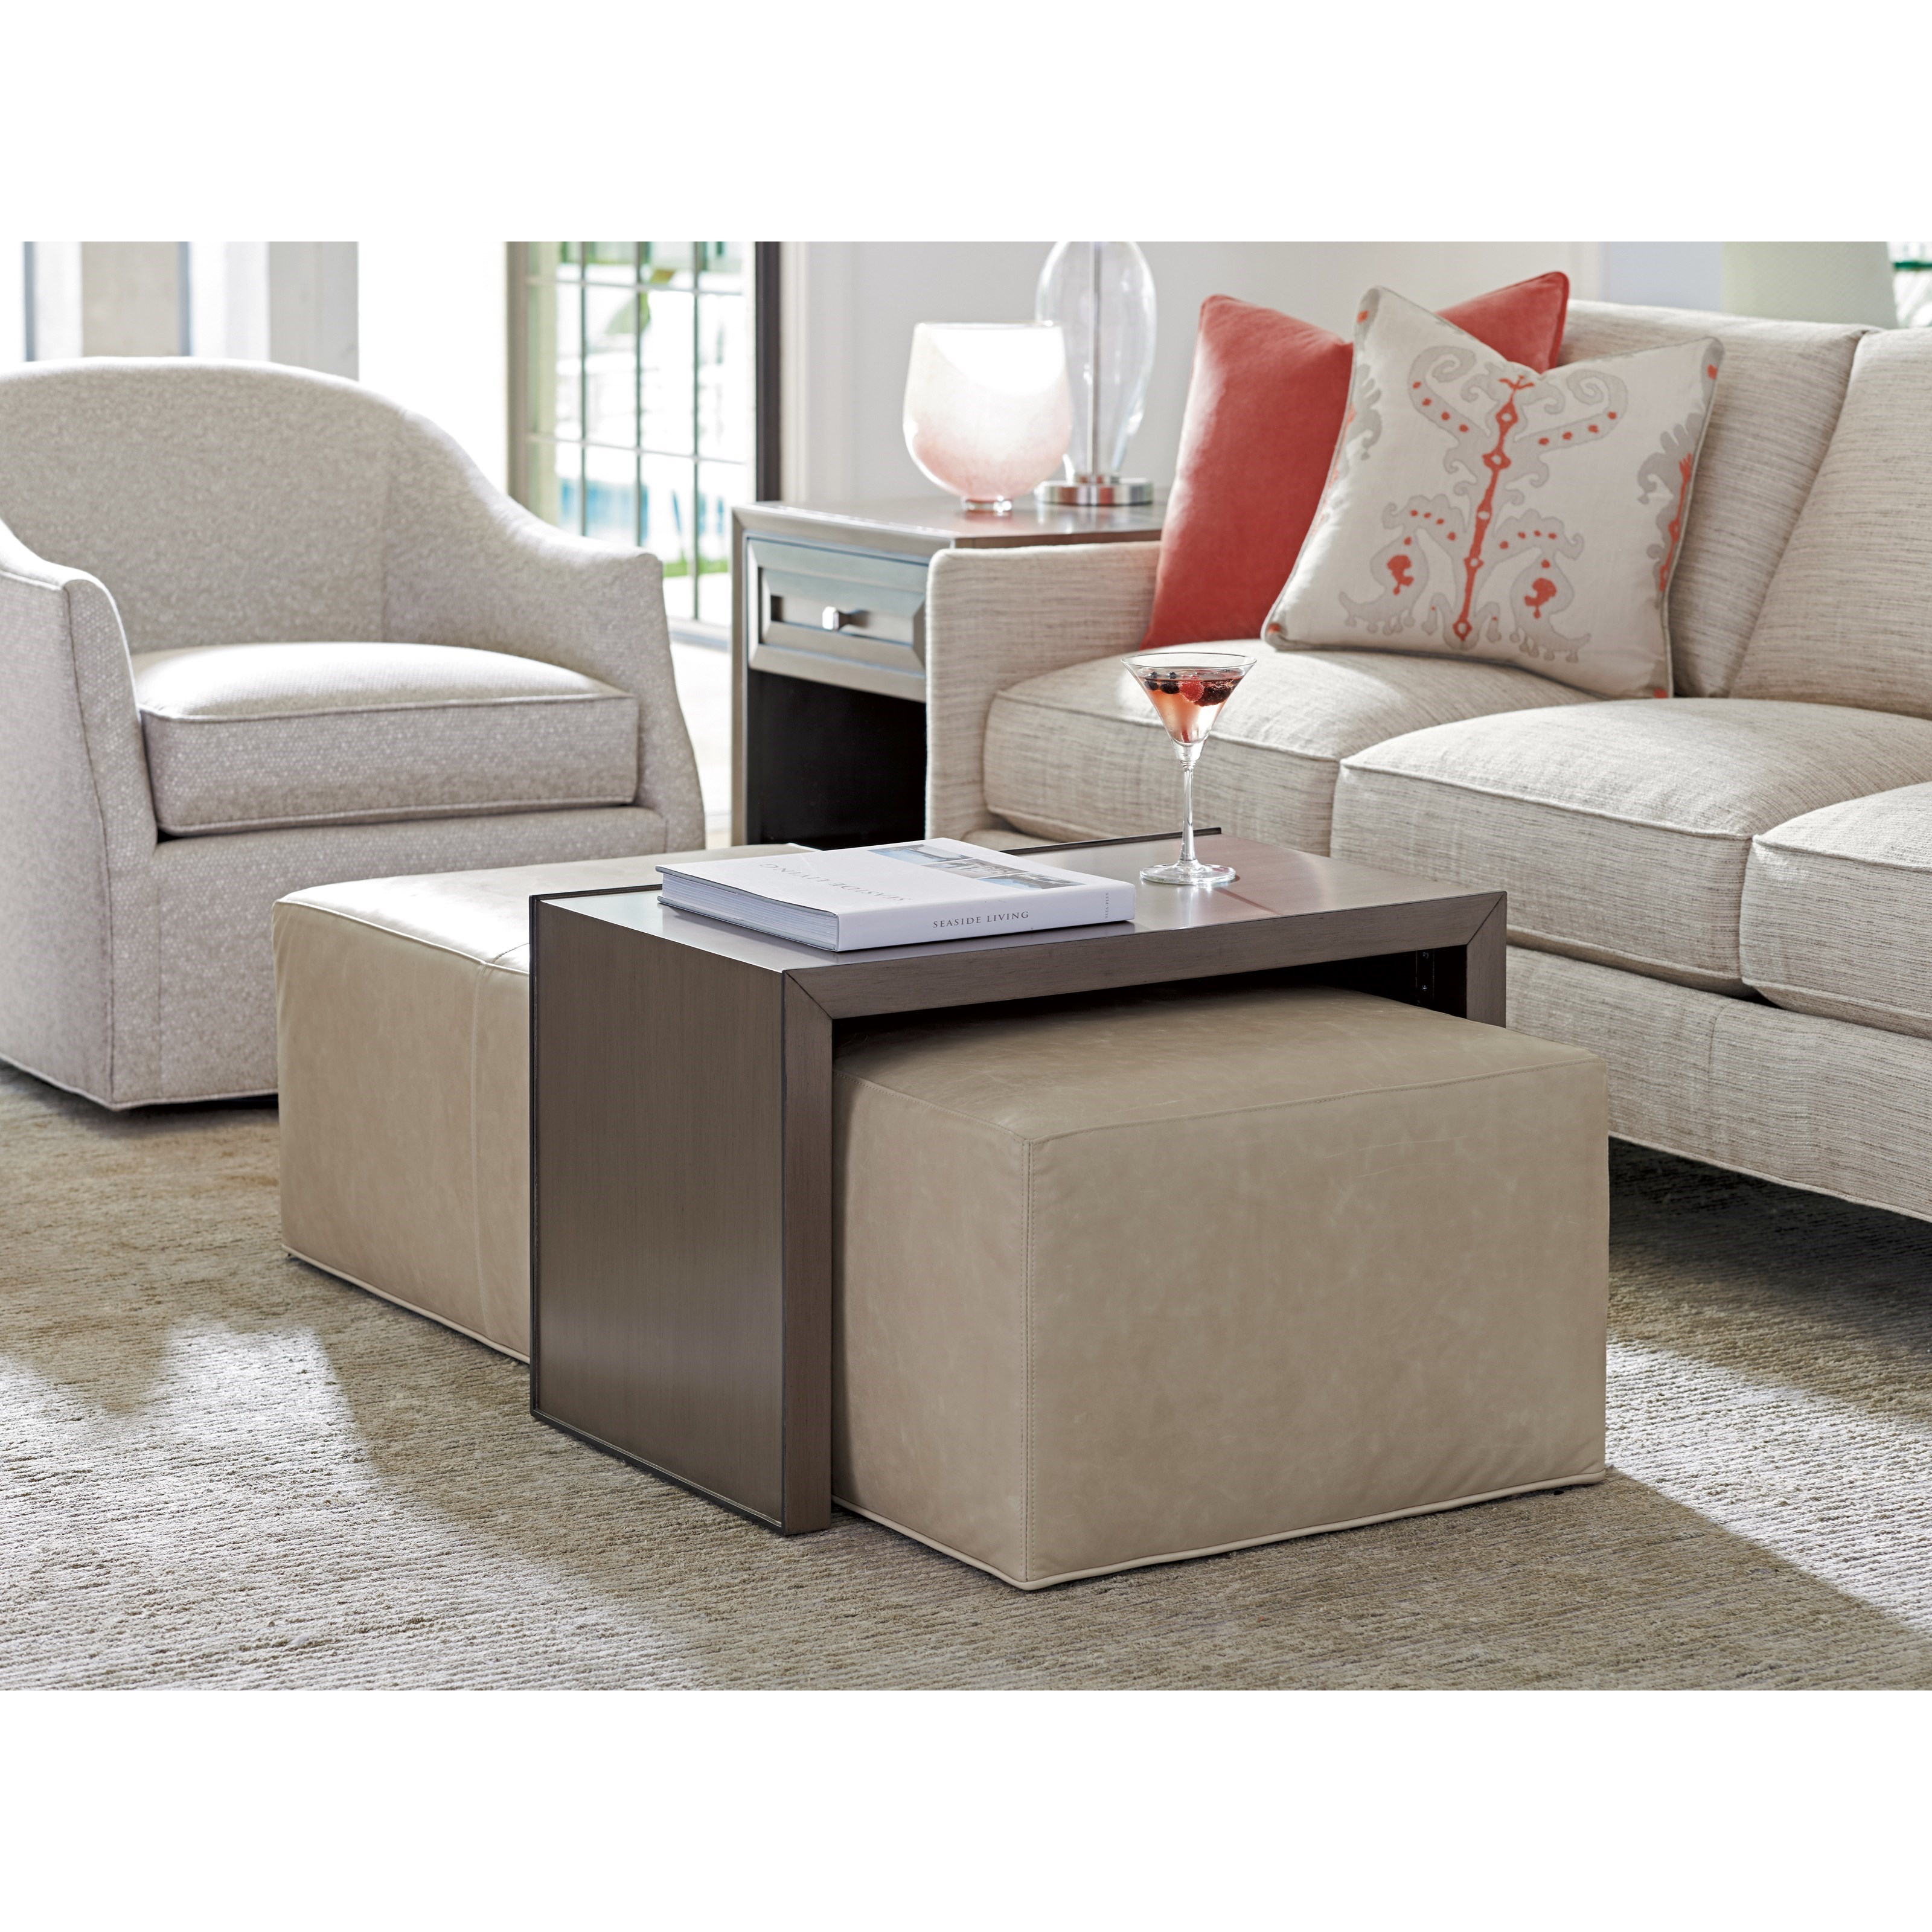 Lexington Ariana Savona Cocktail Ottoman With Sliding Wood